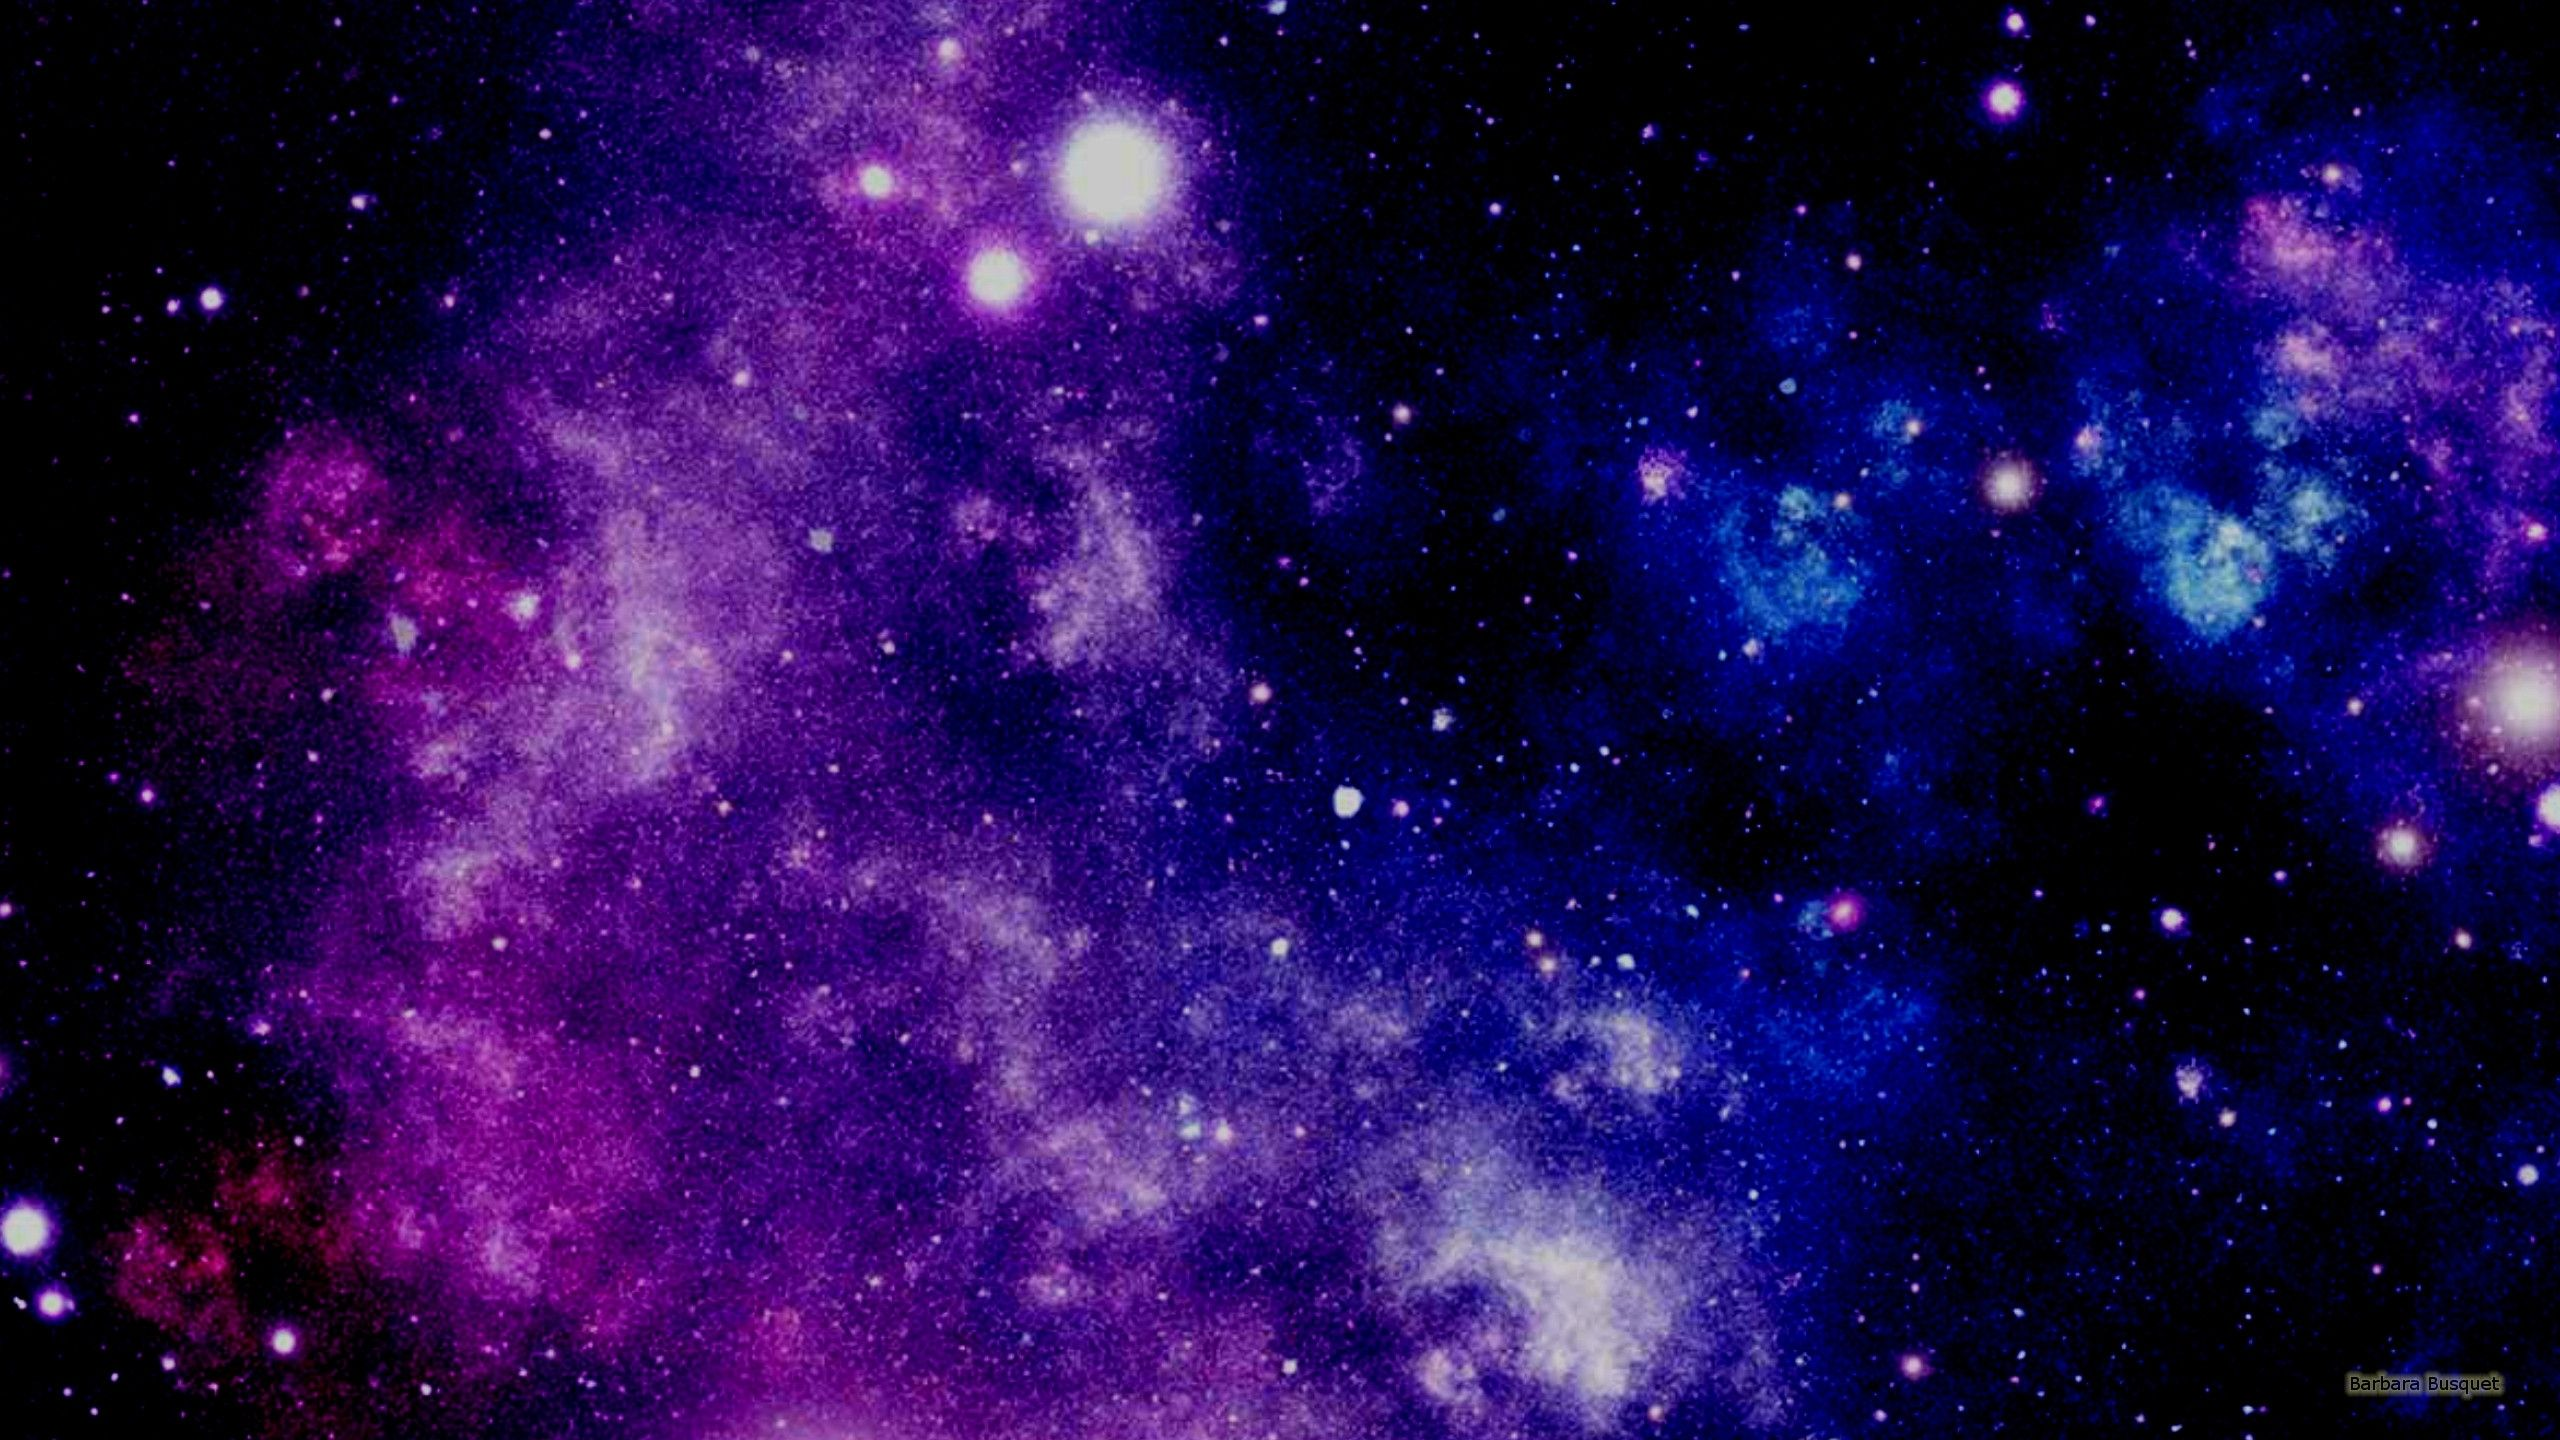 10 New Dark Purple Galaxy Background Full Hd 1920 1080 For Pc Background Purple Galaxy Wallpaper Galaxy Wallpaper Blue Galaxy Wallpaper Galaxy wallpaper black and blue